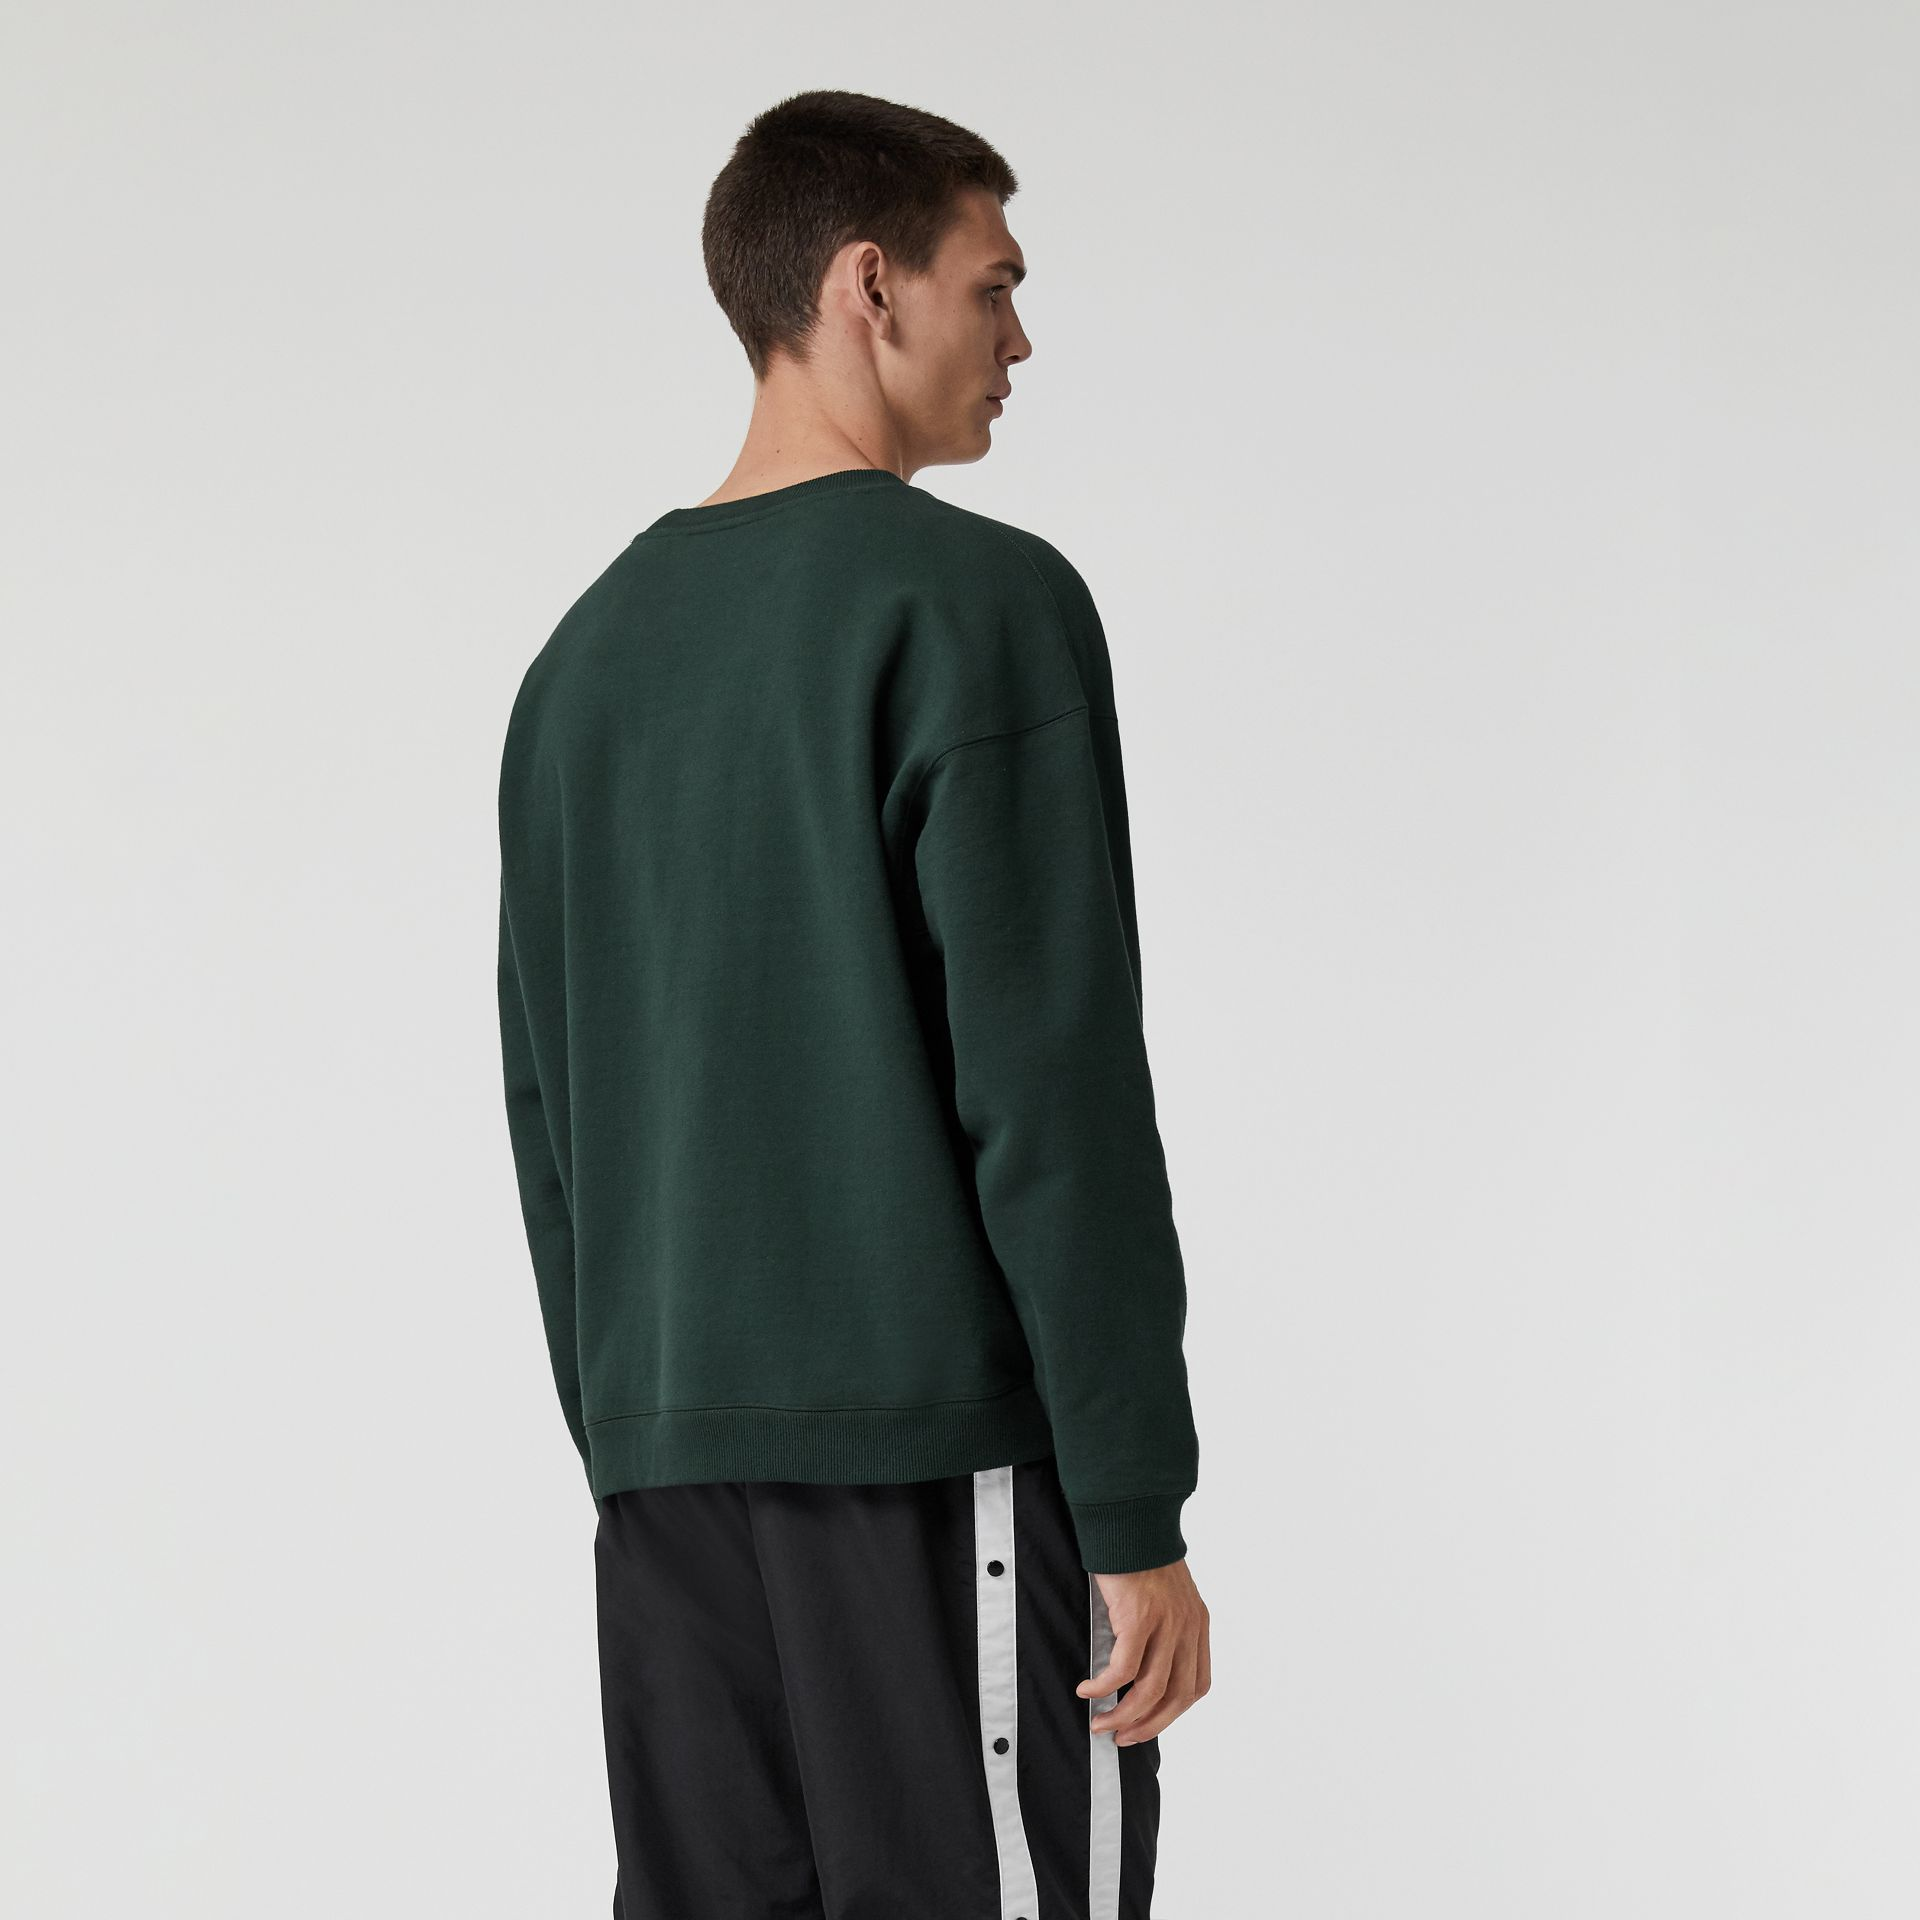 Embroidered Logo Jersey Sweatshirt in Forest Green - Men | Burberry - gallery image 2